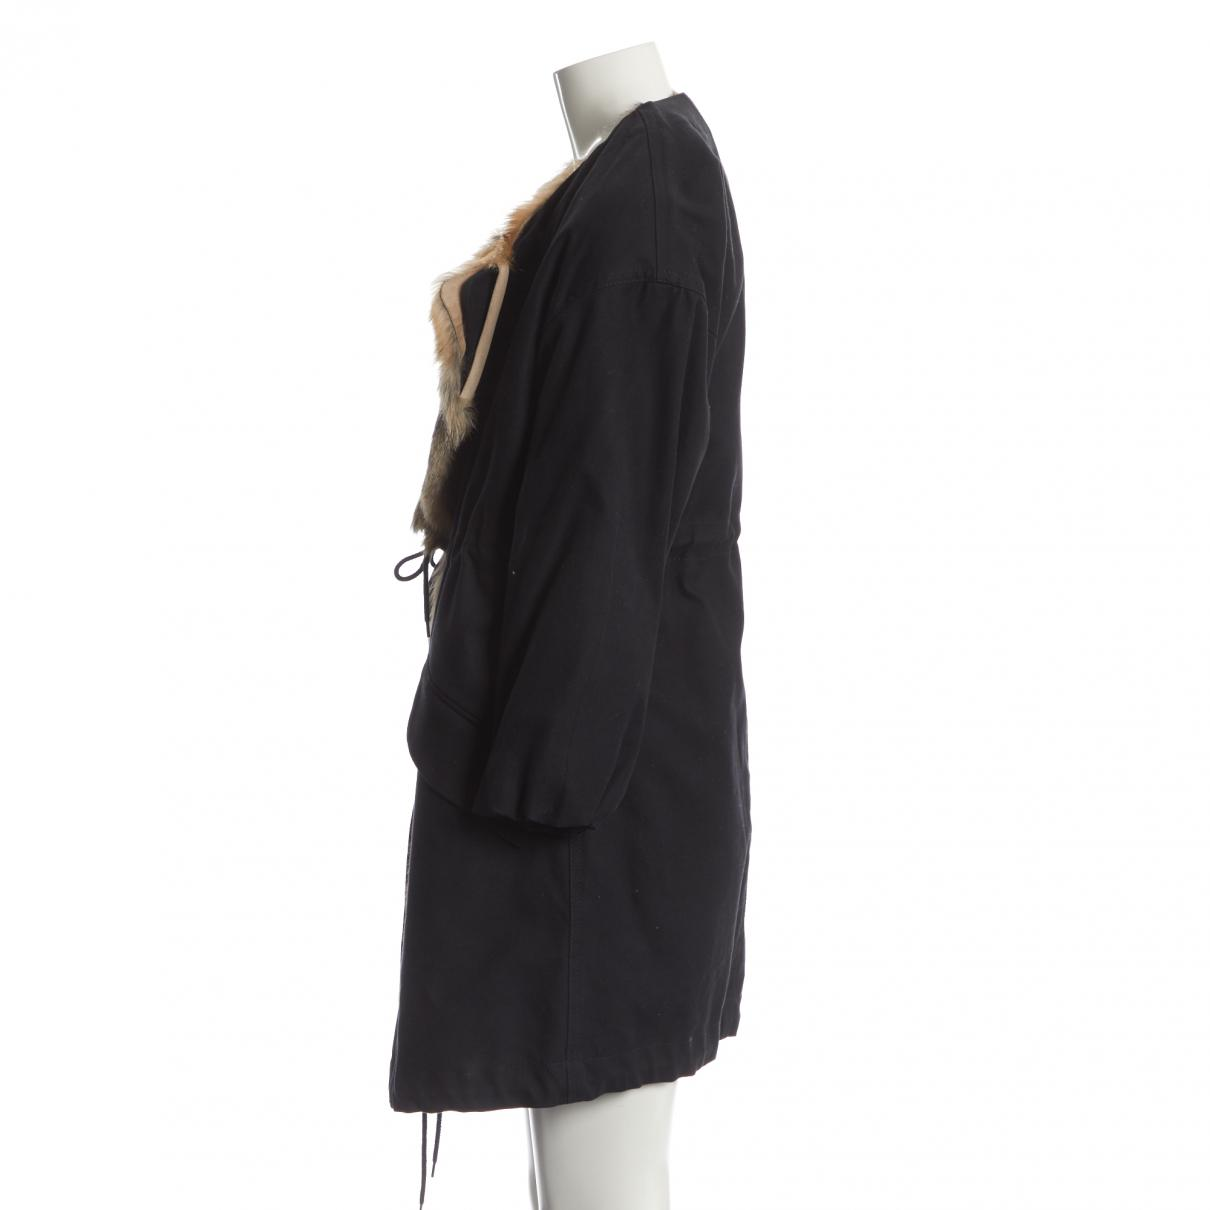 bf0d20a984442 Lyst - Isabel Marant Pre-owned Navy Cotton Coats in Blue